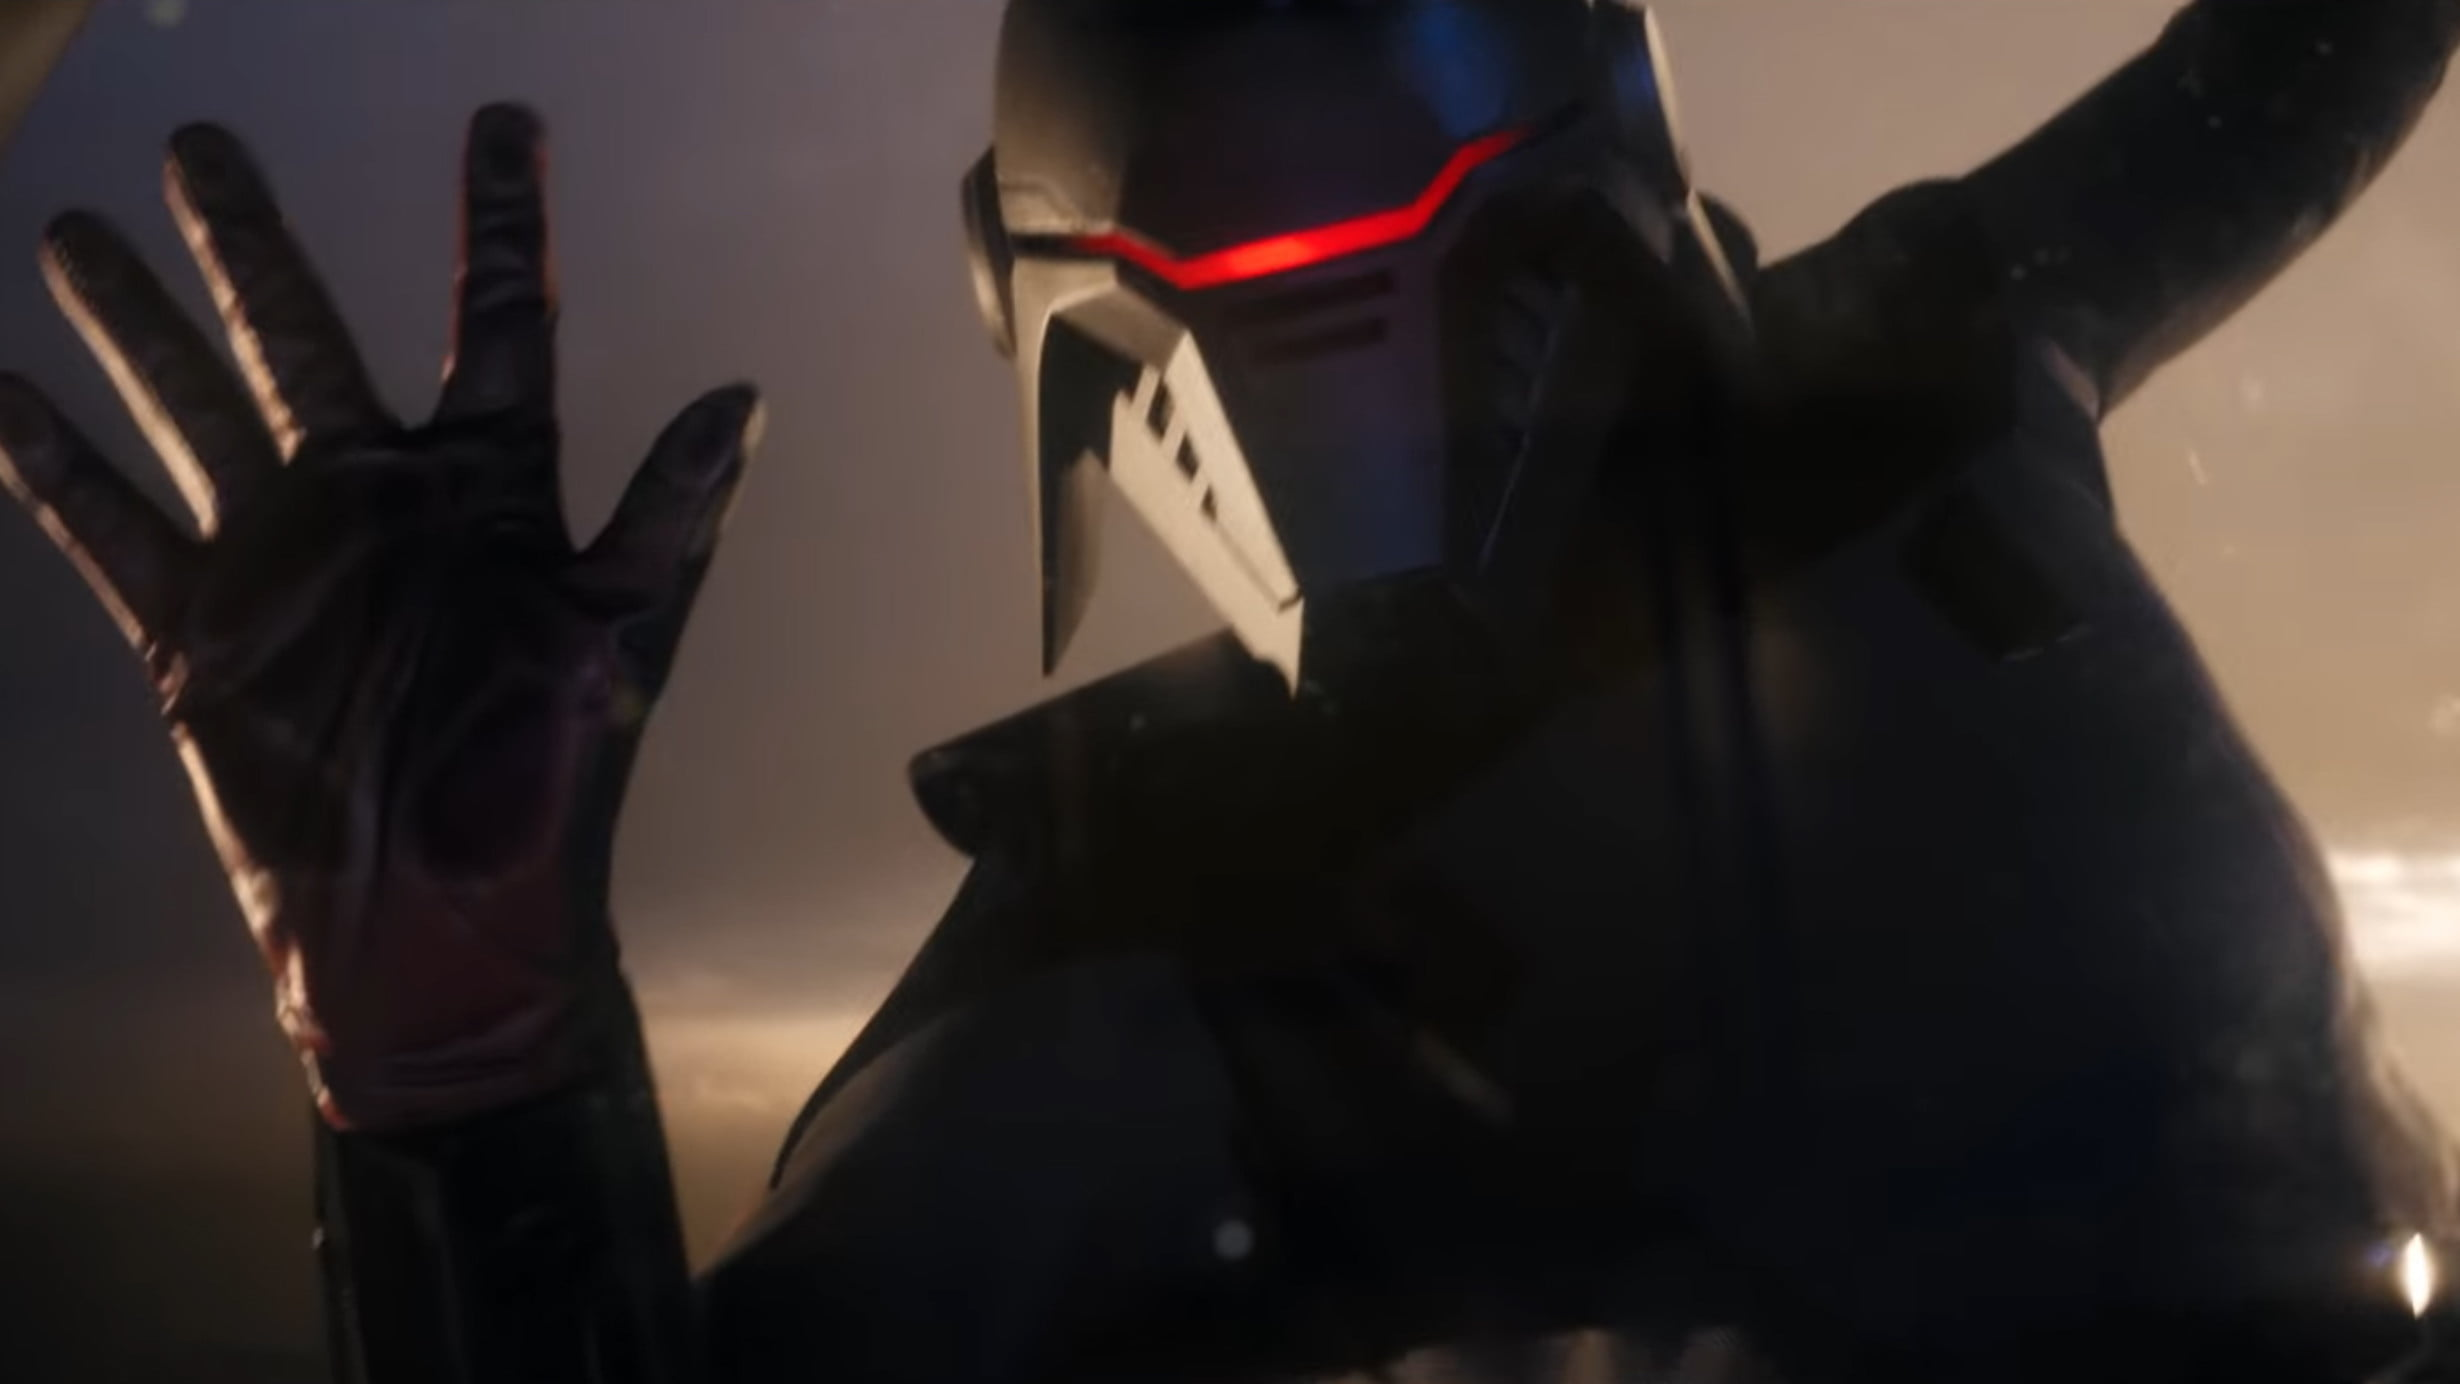 Star Wars Jedi: Fallen Order Release Date, Storyline, Characters and more Revealed by EA